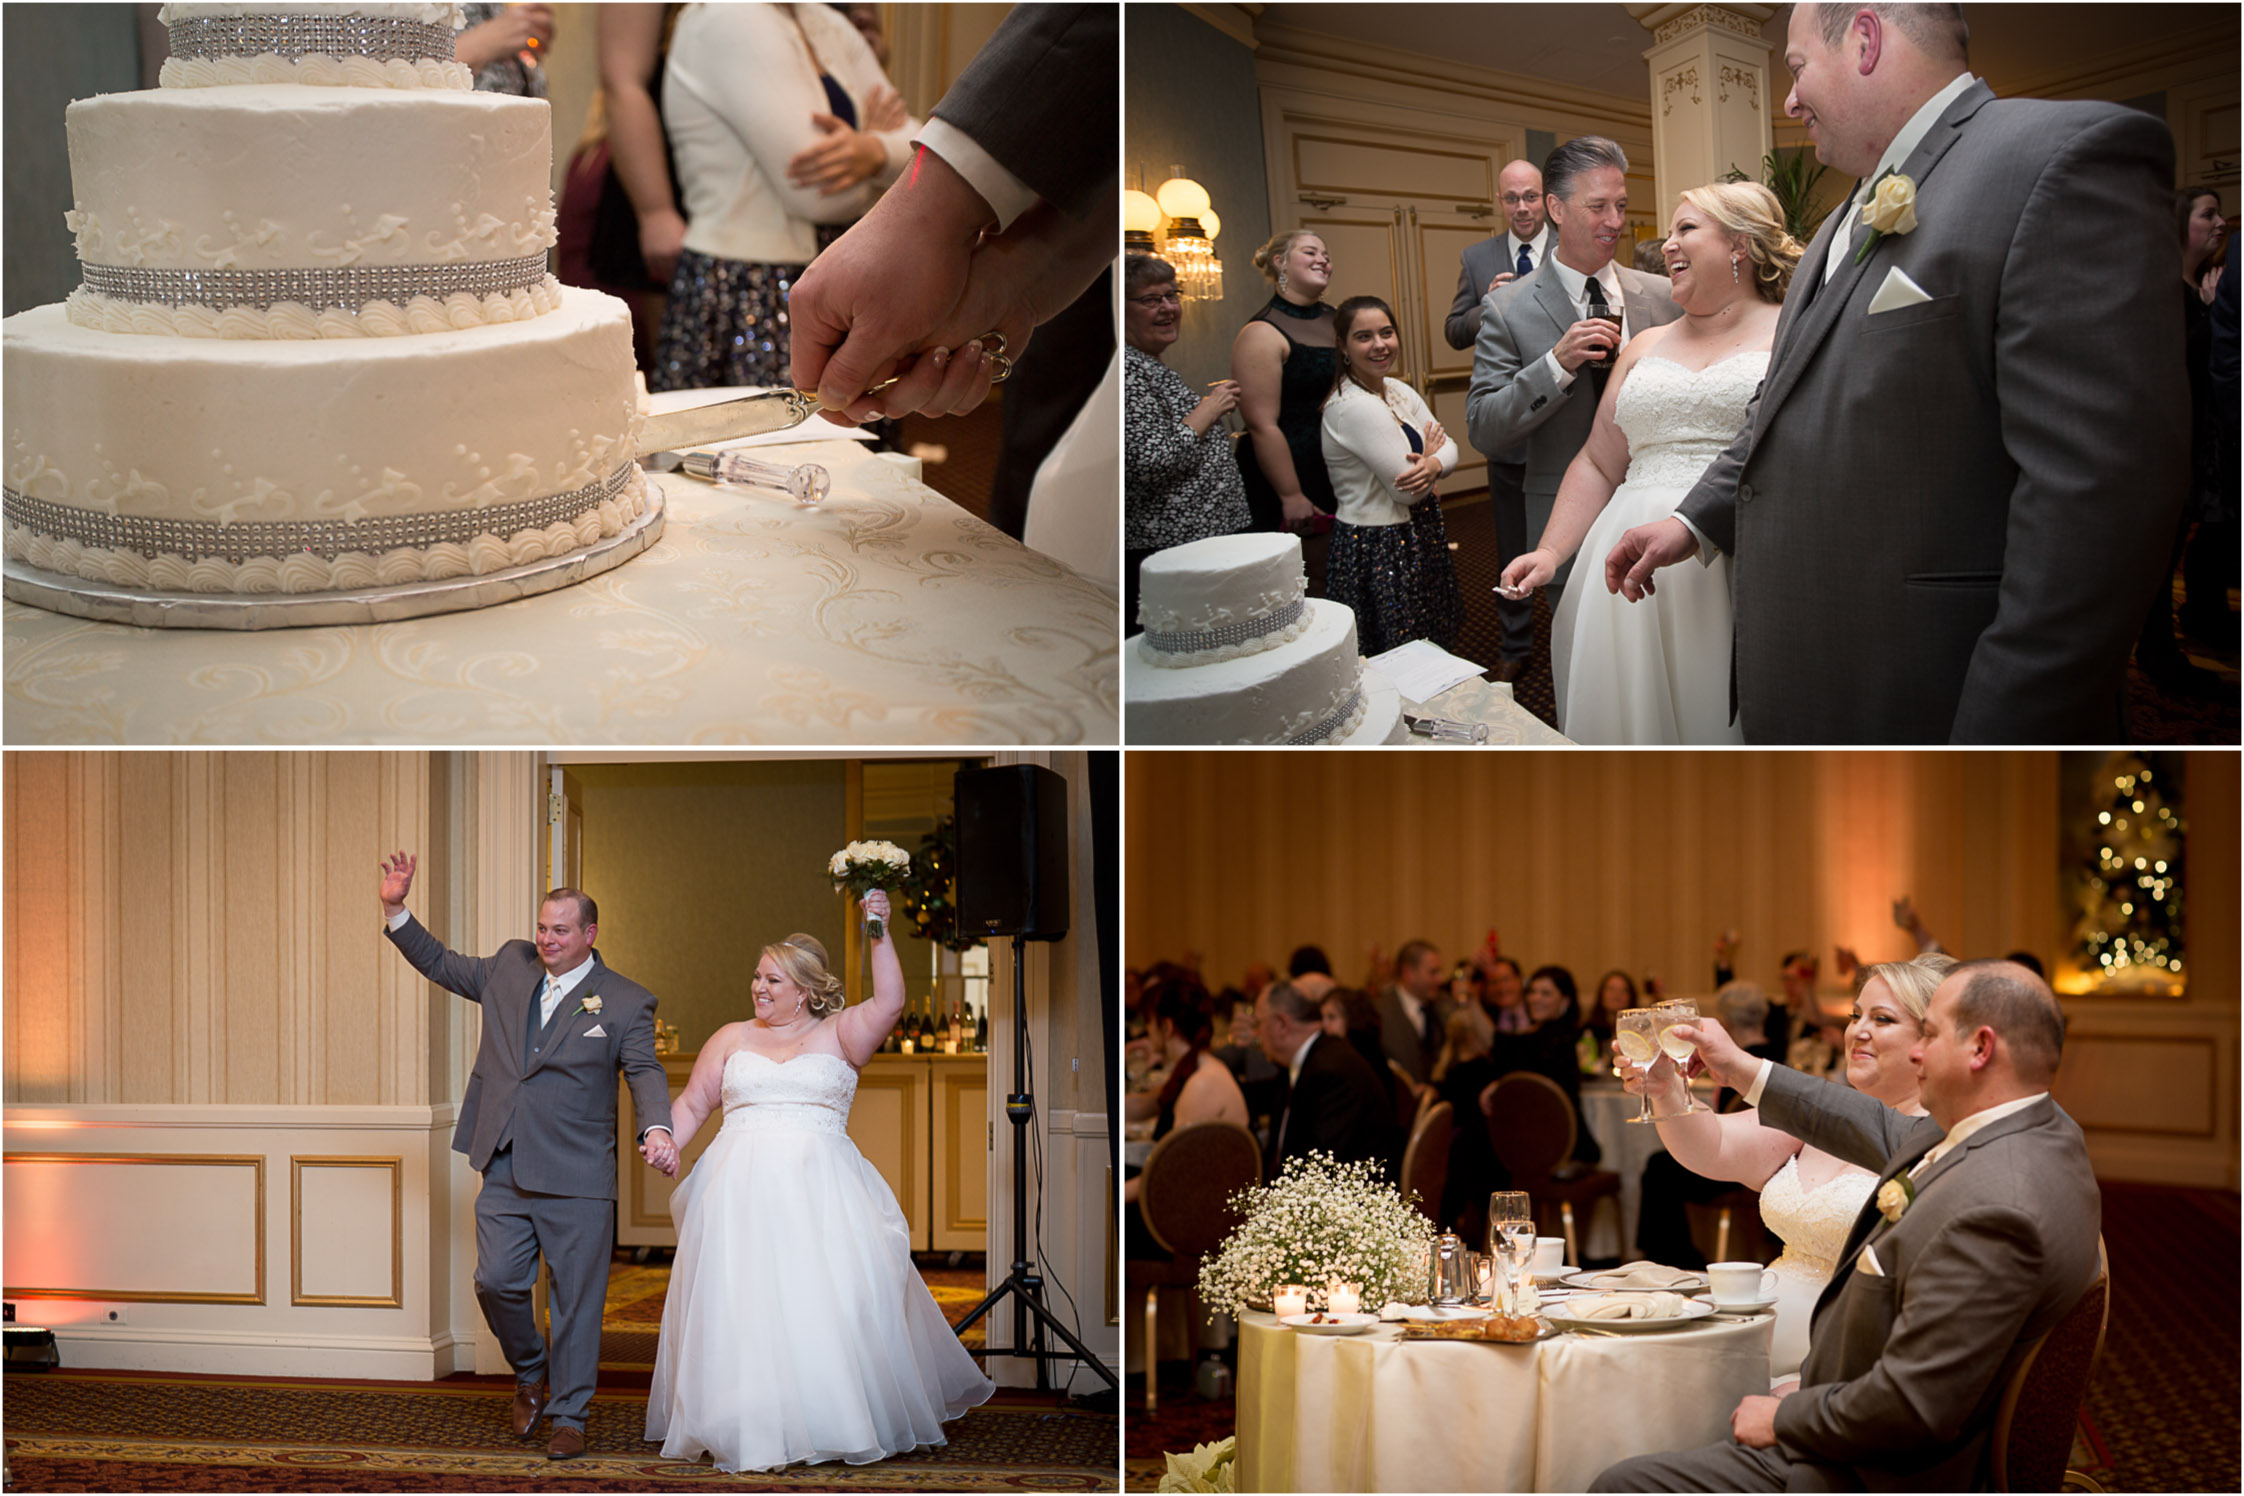 15-the-st-paul-hotel-new-years-eve-wedding-reception-fun-cake-cutting-mahonen-photography.jpg